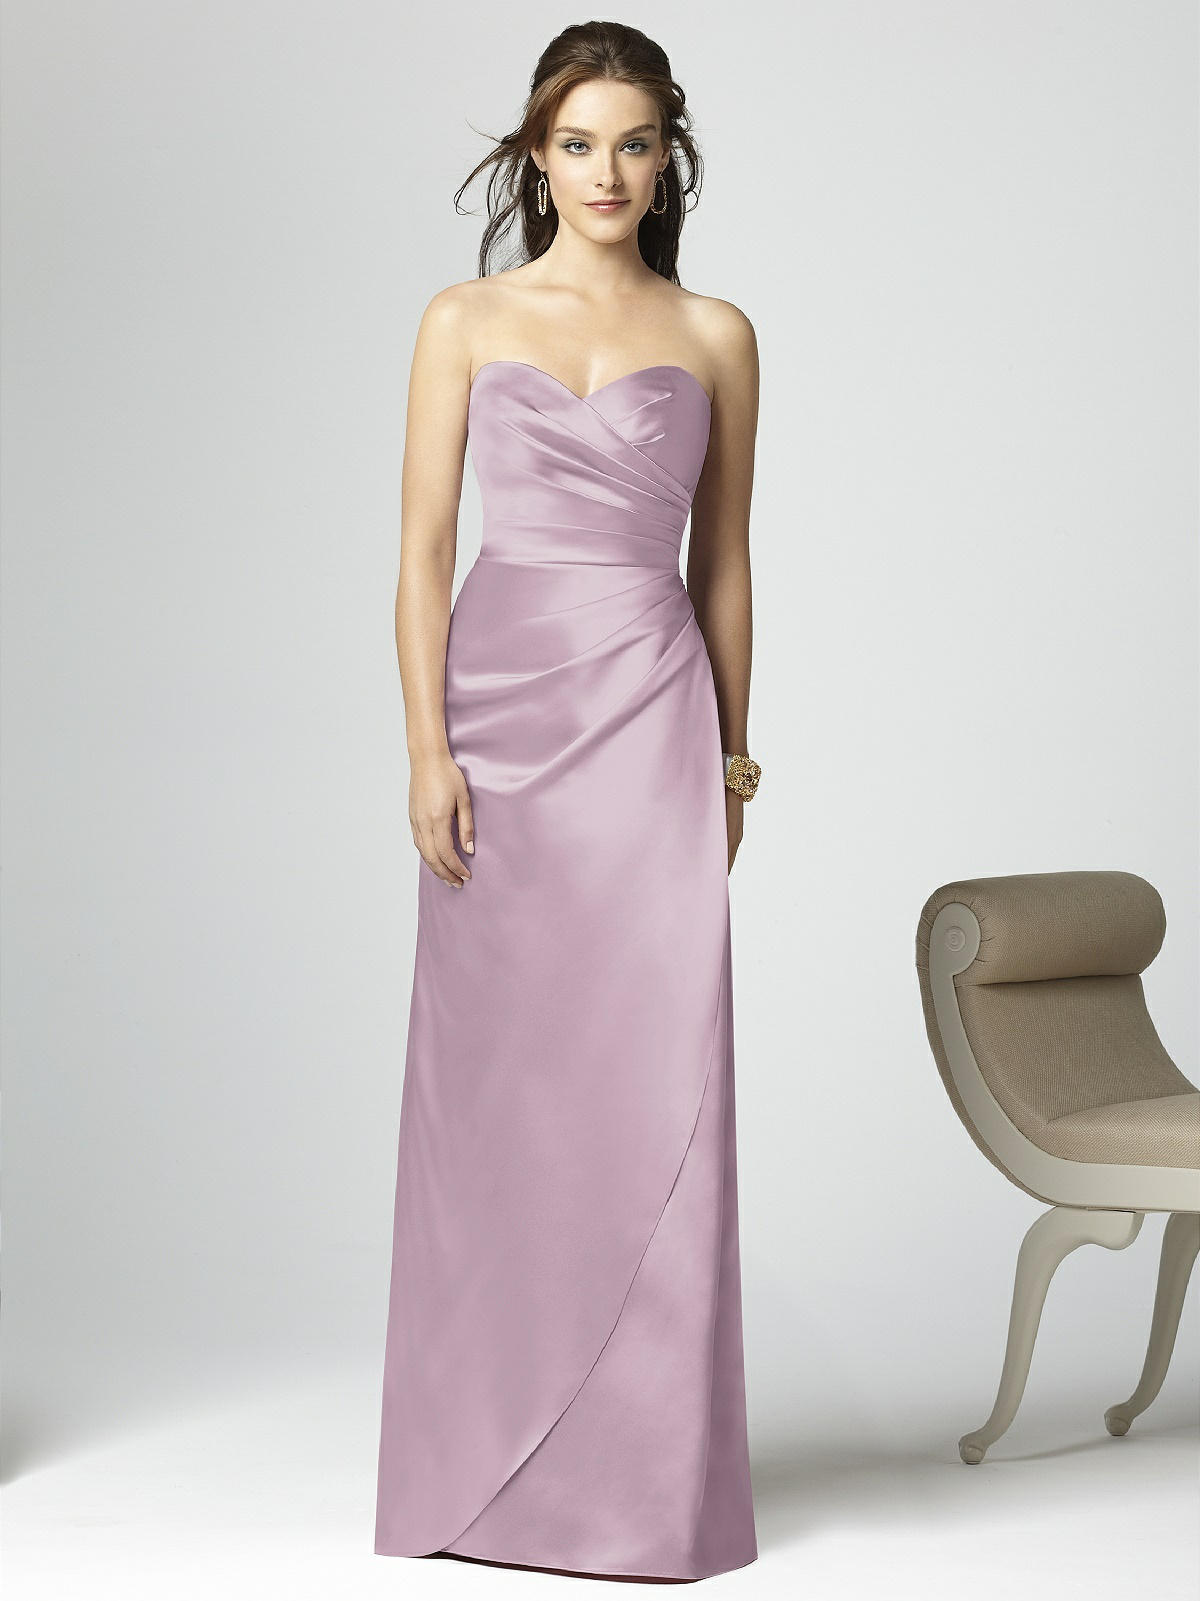 Dessy group bridesmaid dresses size chart dessy group bridesmaid dresses size chart 44 ombrellifo Image collections